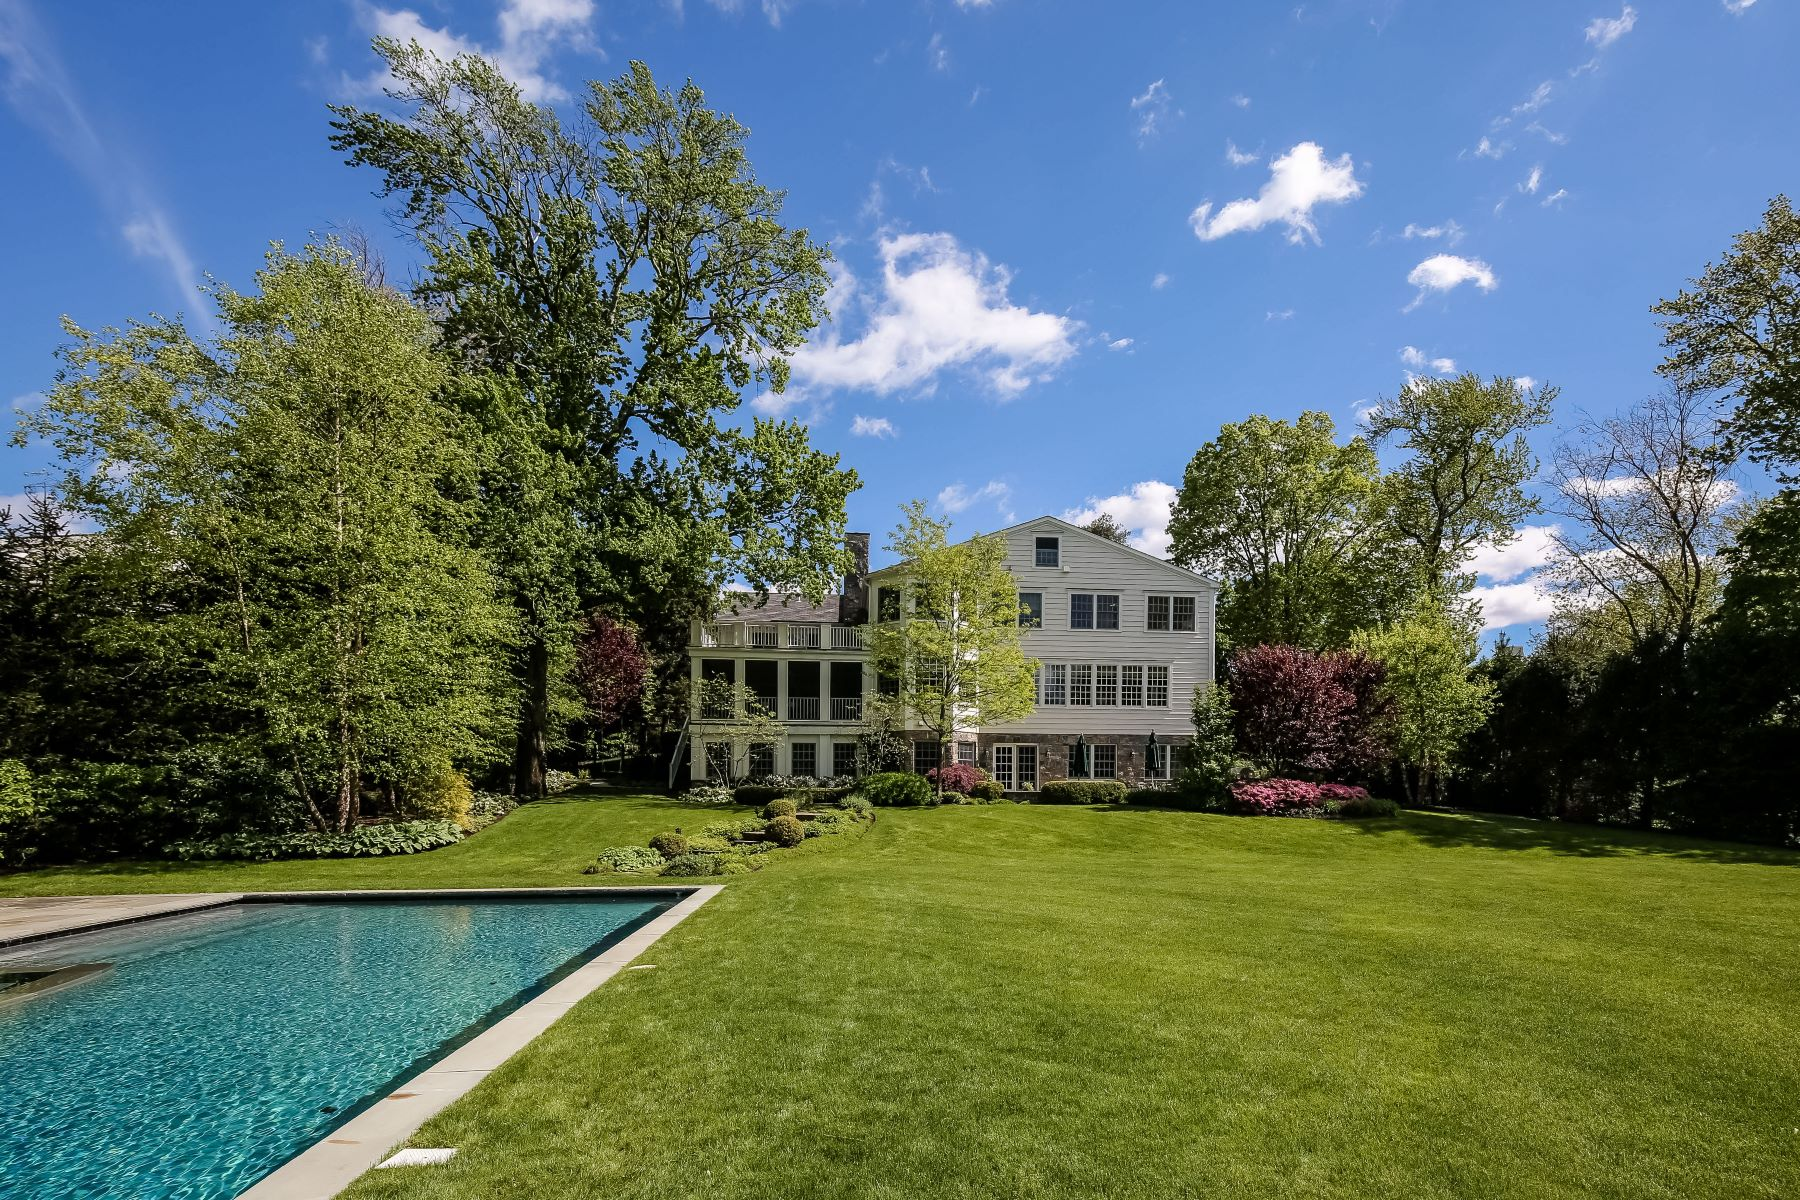 Single Family Home for Sale at Beautifully Renovated Residence in Scarsdale 35 Cushman Road Scarsdale, New York 10583 United States